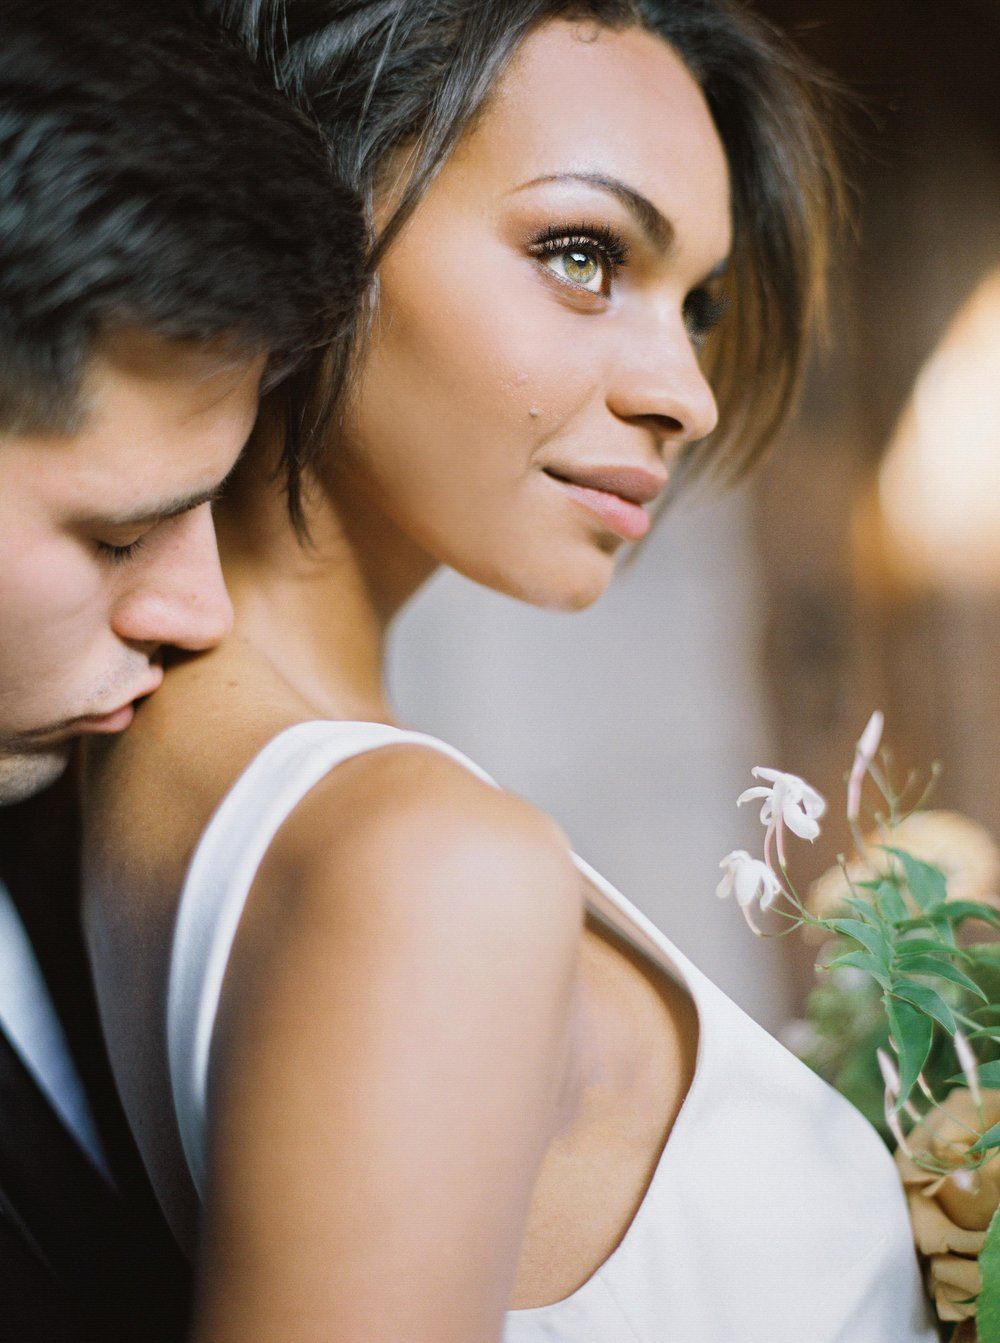 032napa_wedding_photographer_and_videographer_destination_and_elopement_photography.jpg